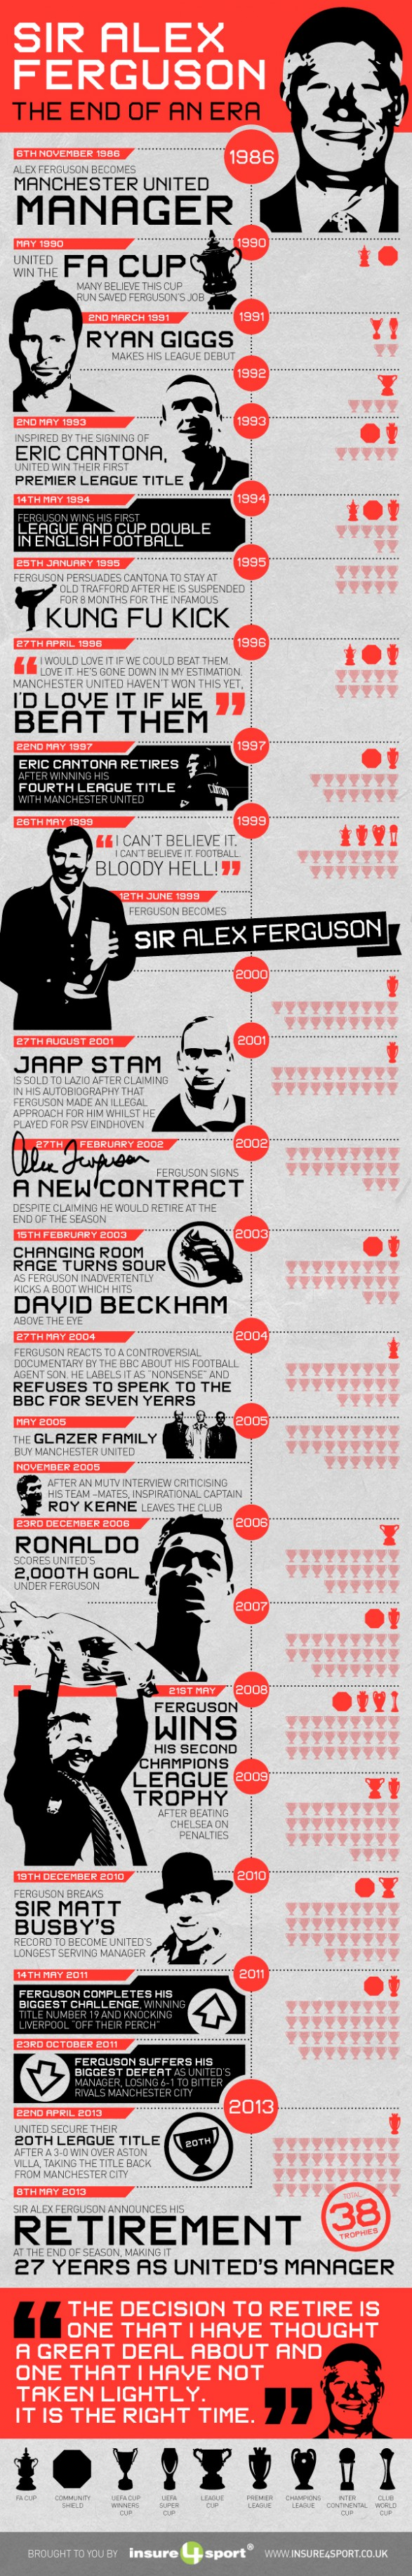 fergie Sir Alex Ferguson: Charting His Manchester United Management Career From 1986 2013 [INFOGRAPHIC]